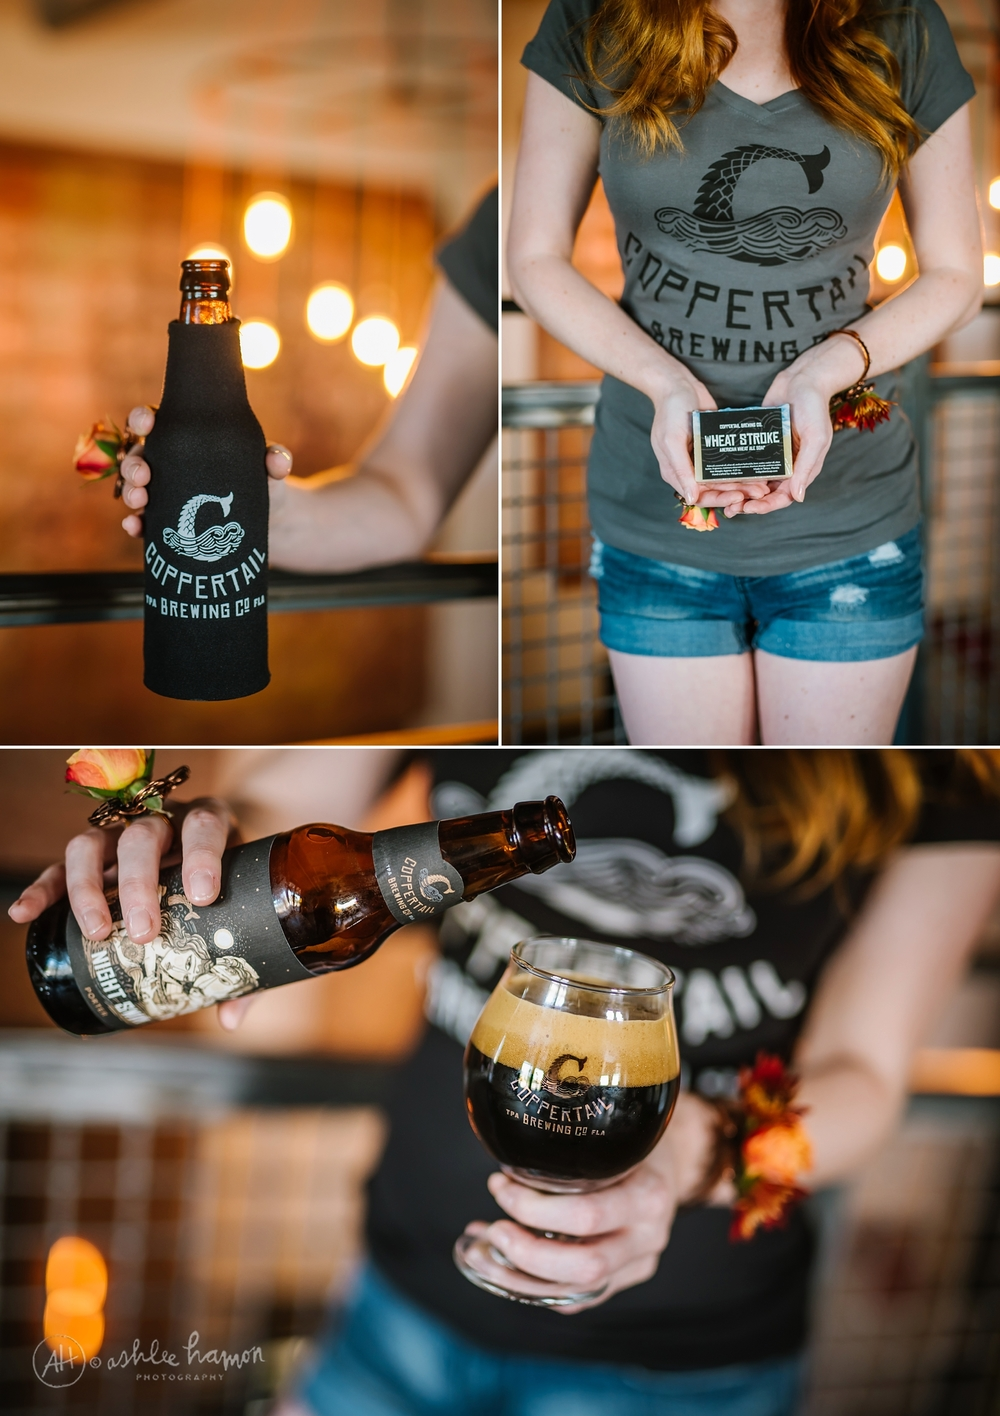 tampa-commercial-photographer-coppertail-brewing-ashlee-hamon_0000.jpg